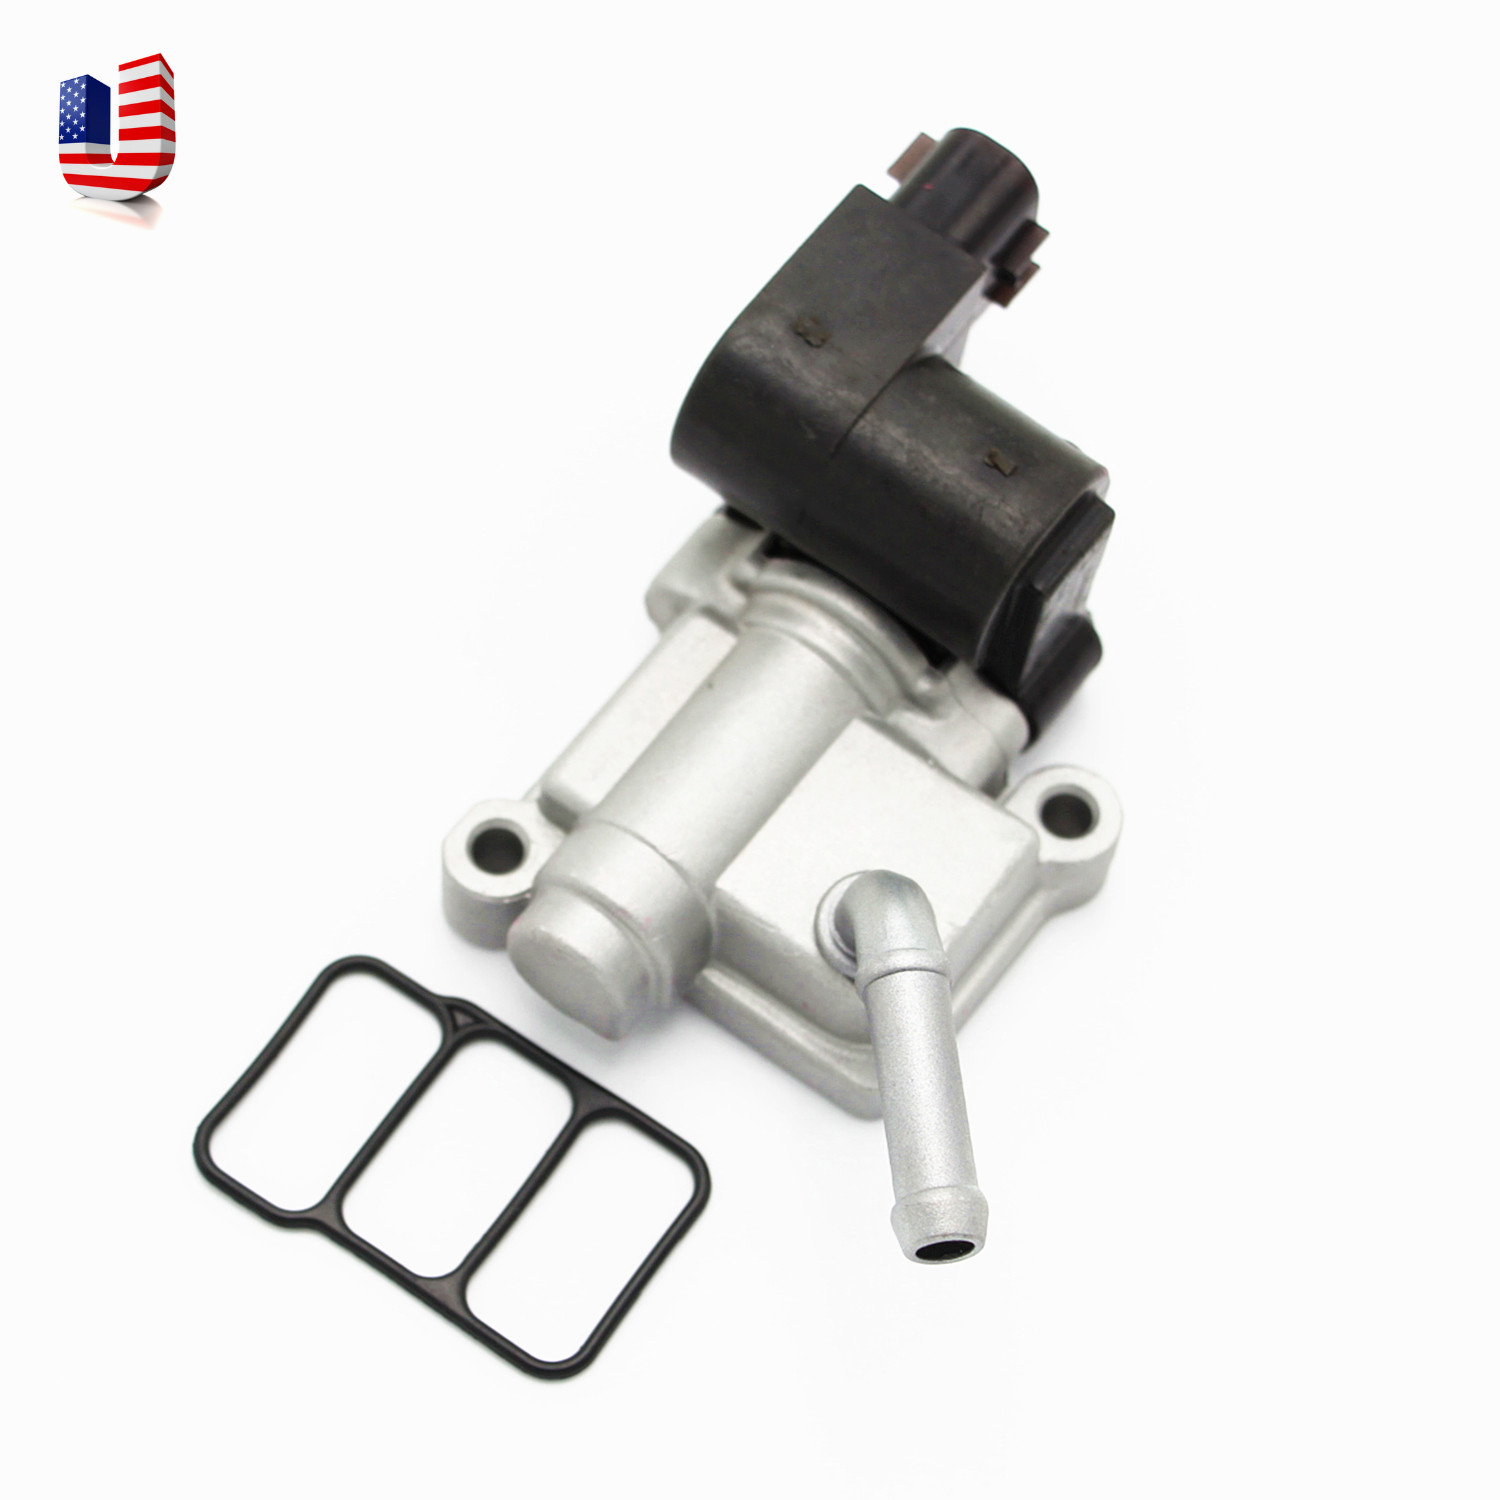 OEM IAC Idle Air Control Valve Fits For Acura RSX Honda